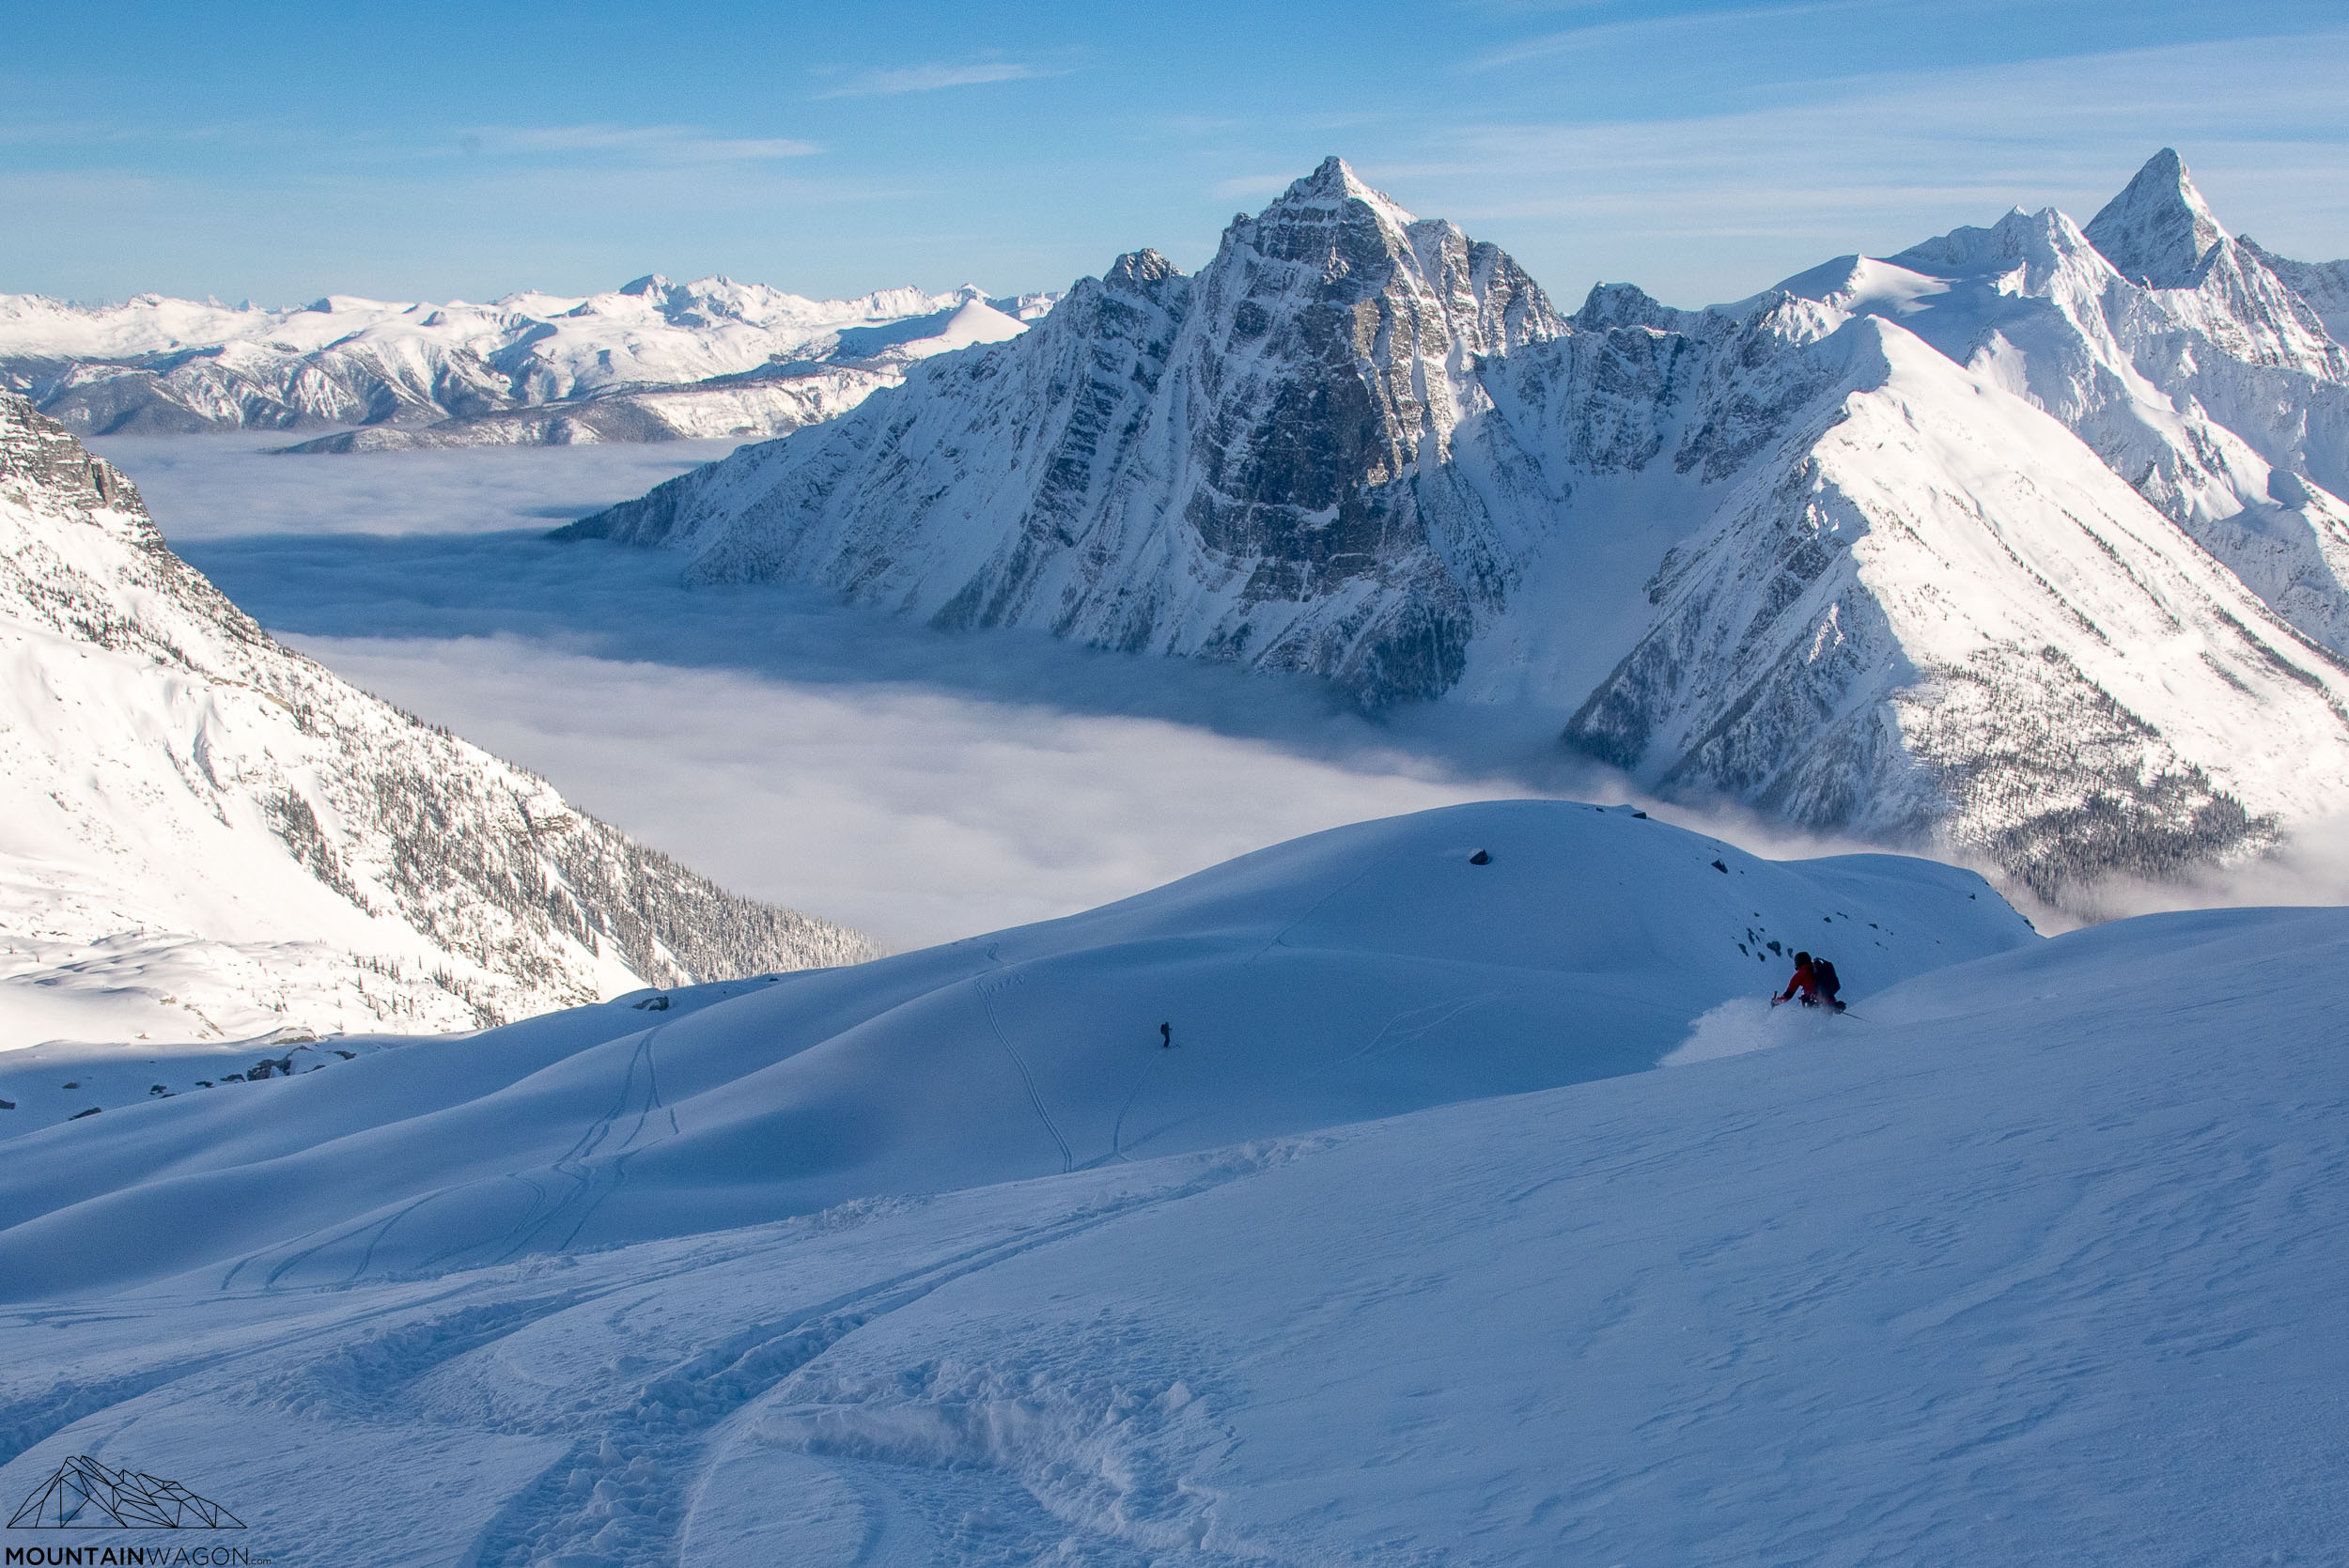 Skyler cruises down the Hermit Glacier with Mount McDonald and Mount Sir Donald in the background.